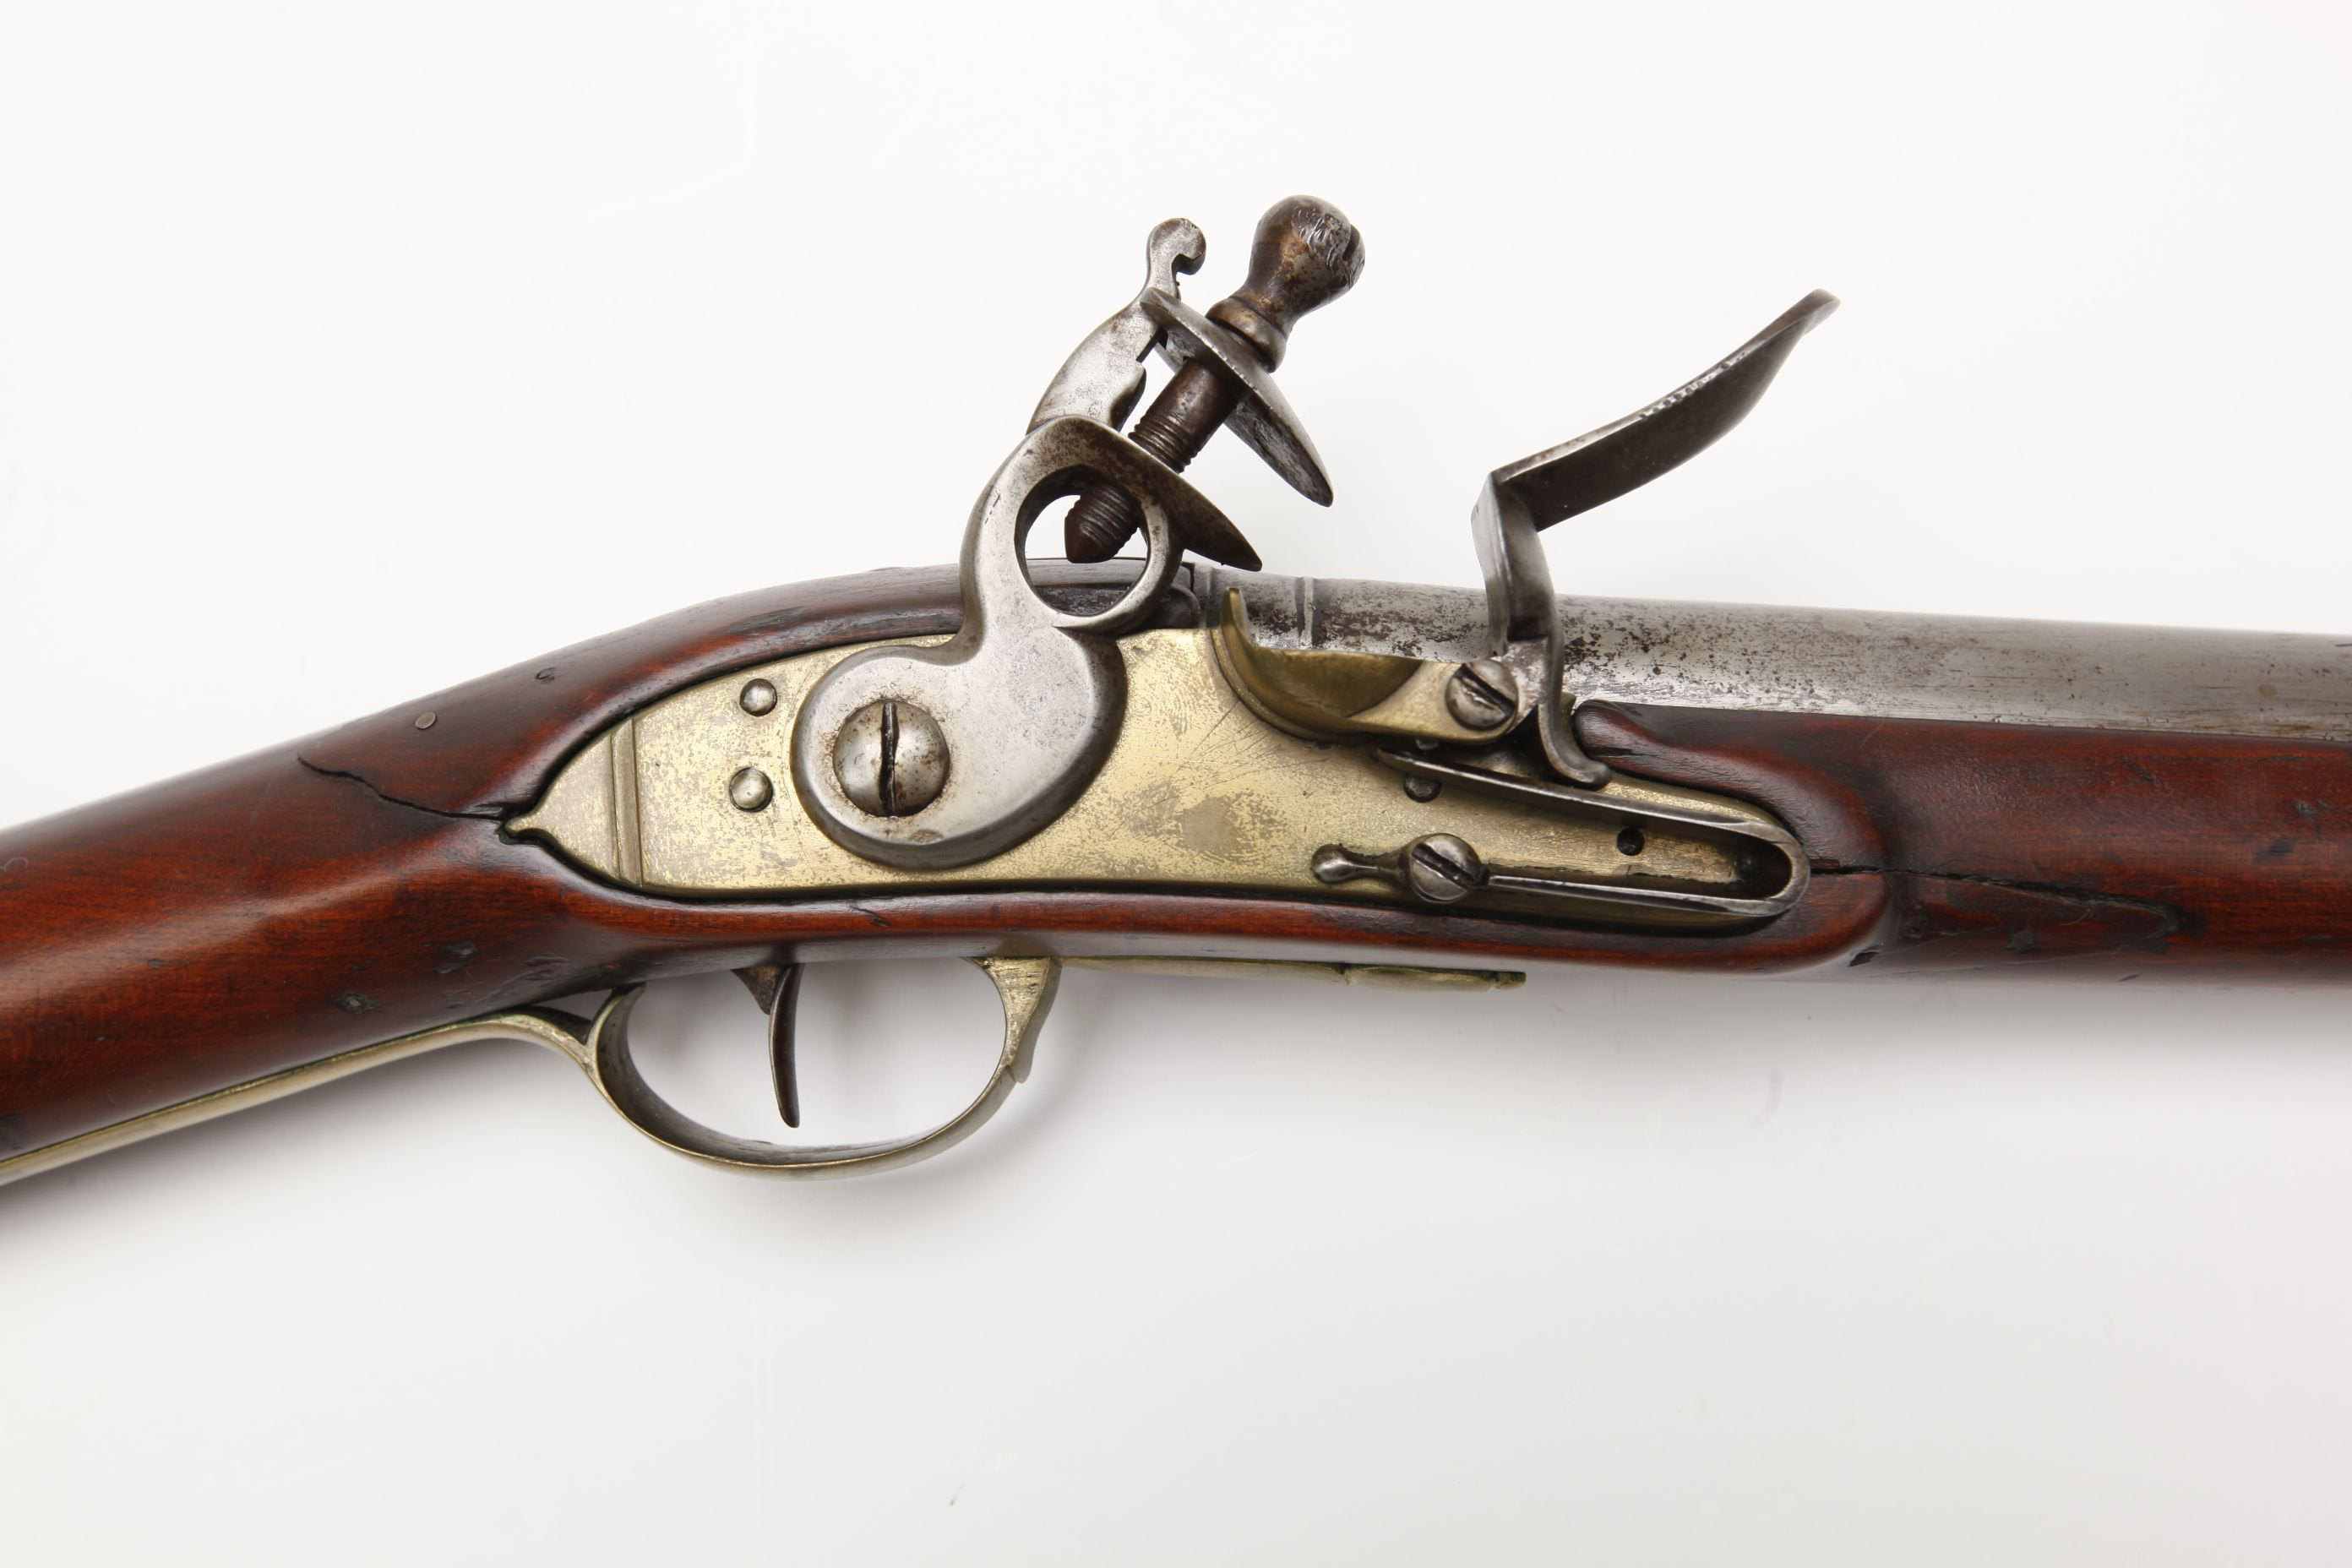 Committee of Safety Flintlock Musket